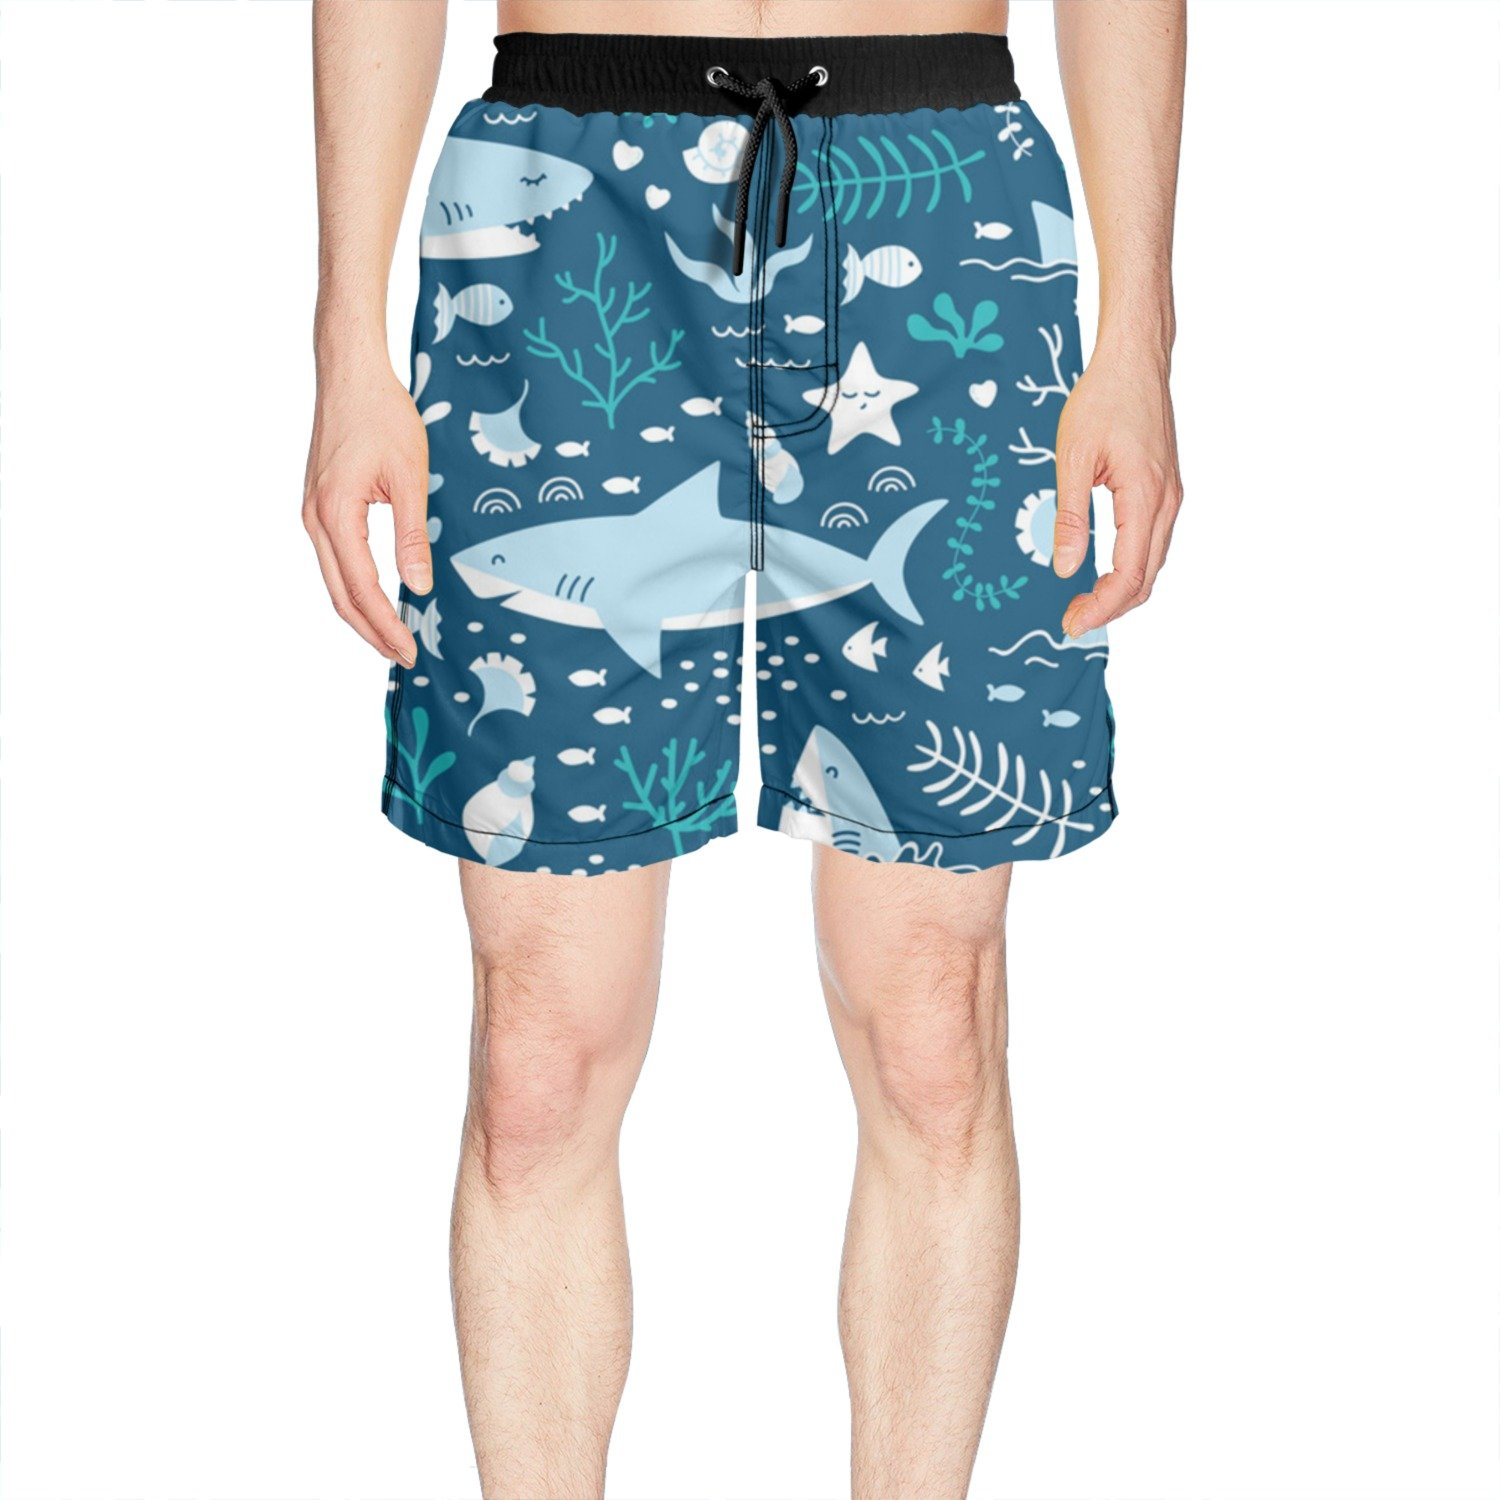 White Juliuse Marthar Men's Happy Sharks by Modern Modern Modern Fashion Swimming Trunks Short Quick Dry Summer Short d04886